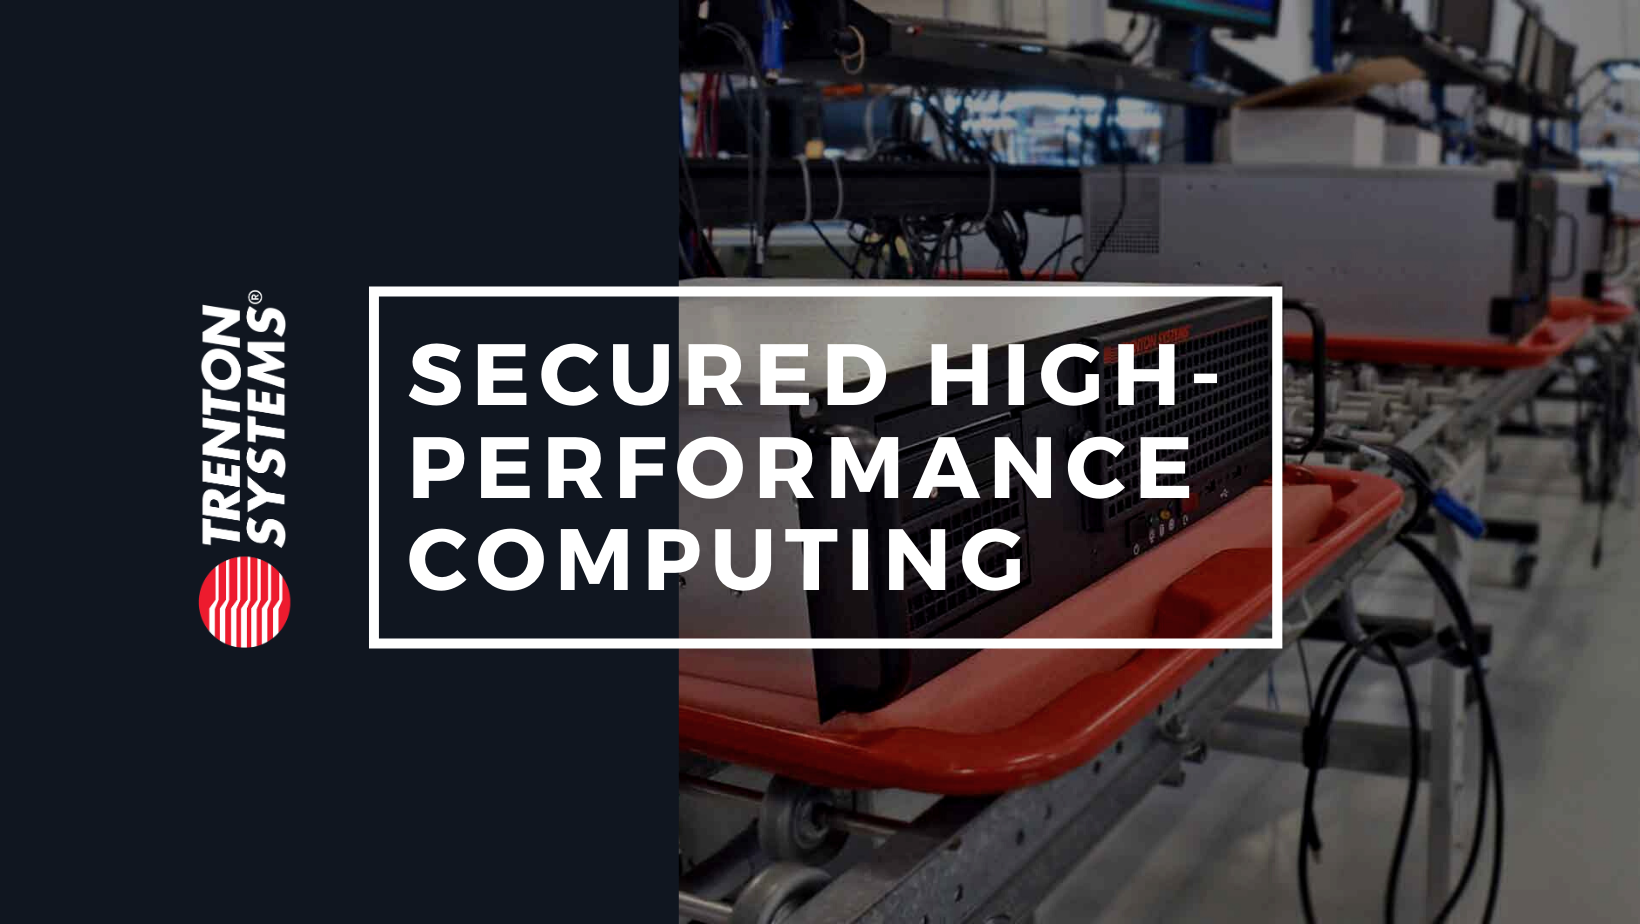 Trenton Systems is a longtime, trusted provider of secure, high-performance computing solutions.